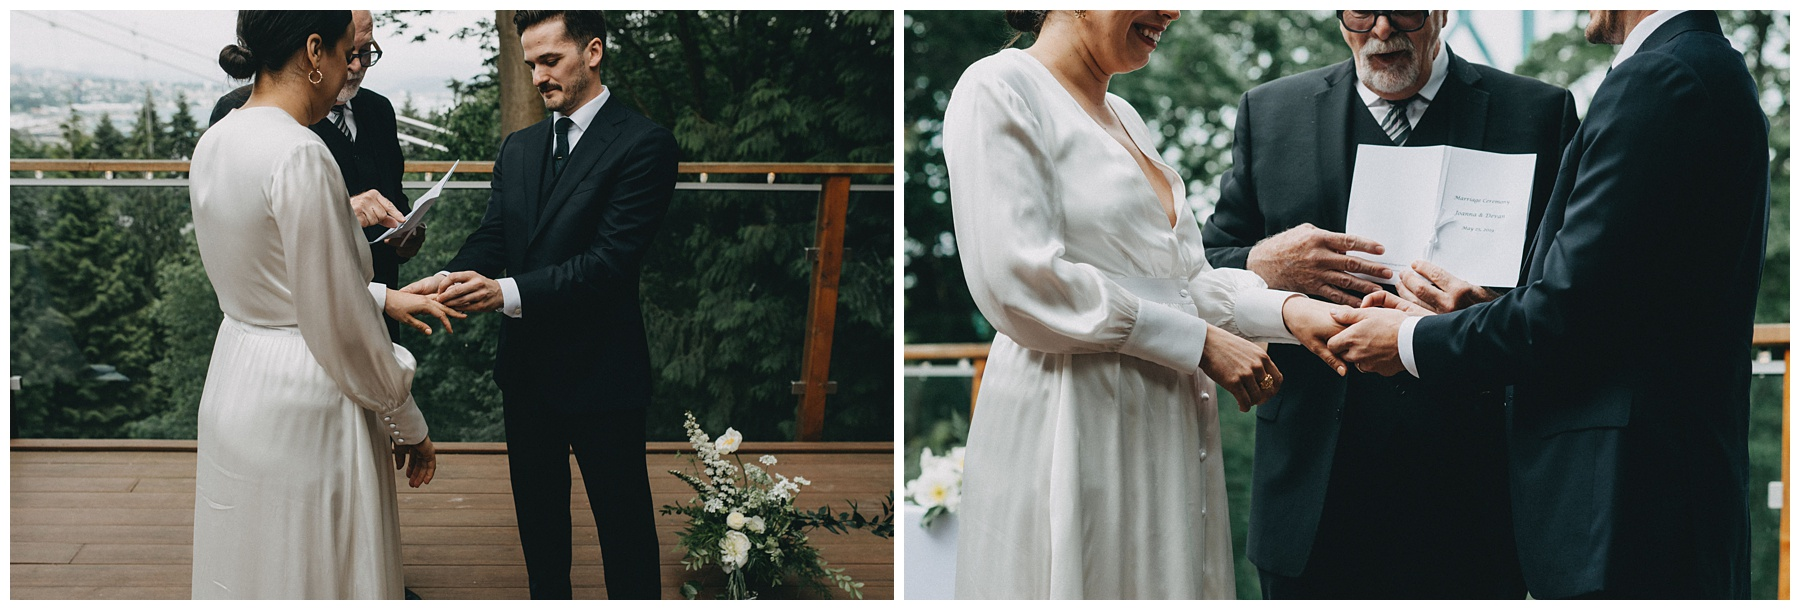 Vancouver wedding photographer stanley park_1103.jpg